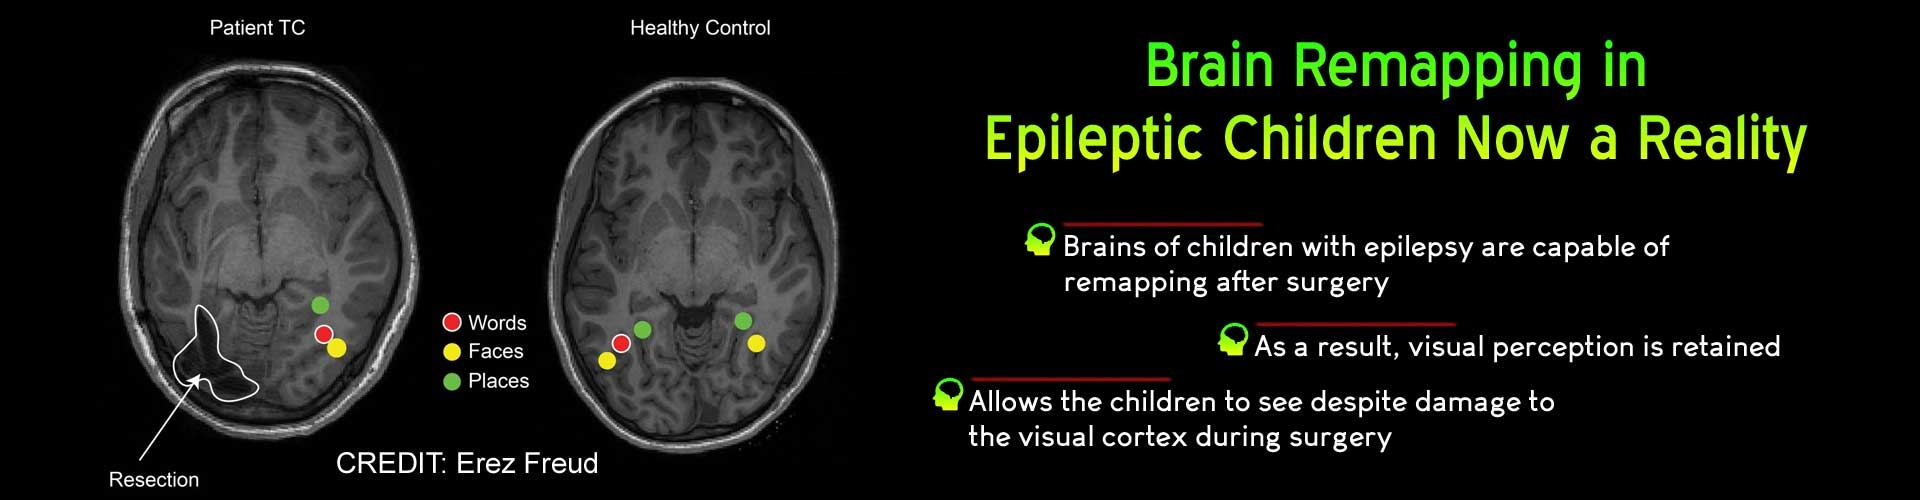 Children with Epilepsy can Retain Visual Perception After Surgery: Here's How